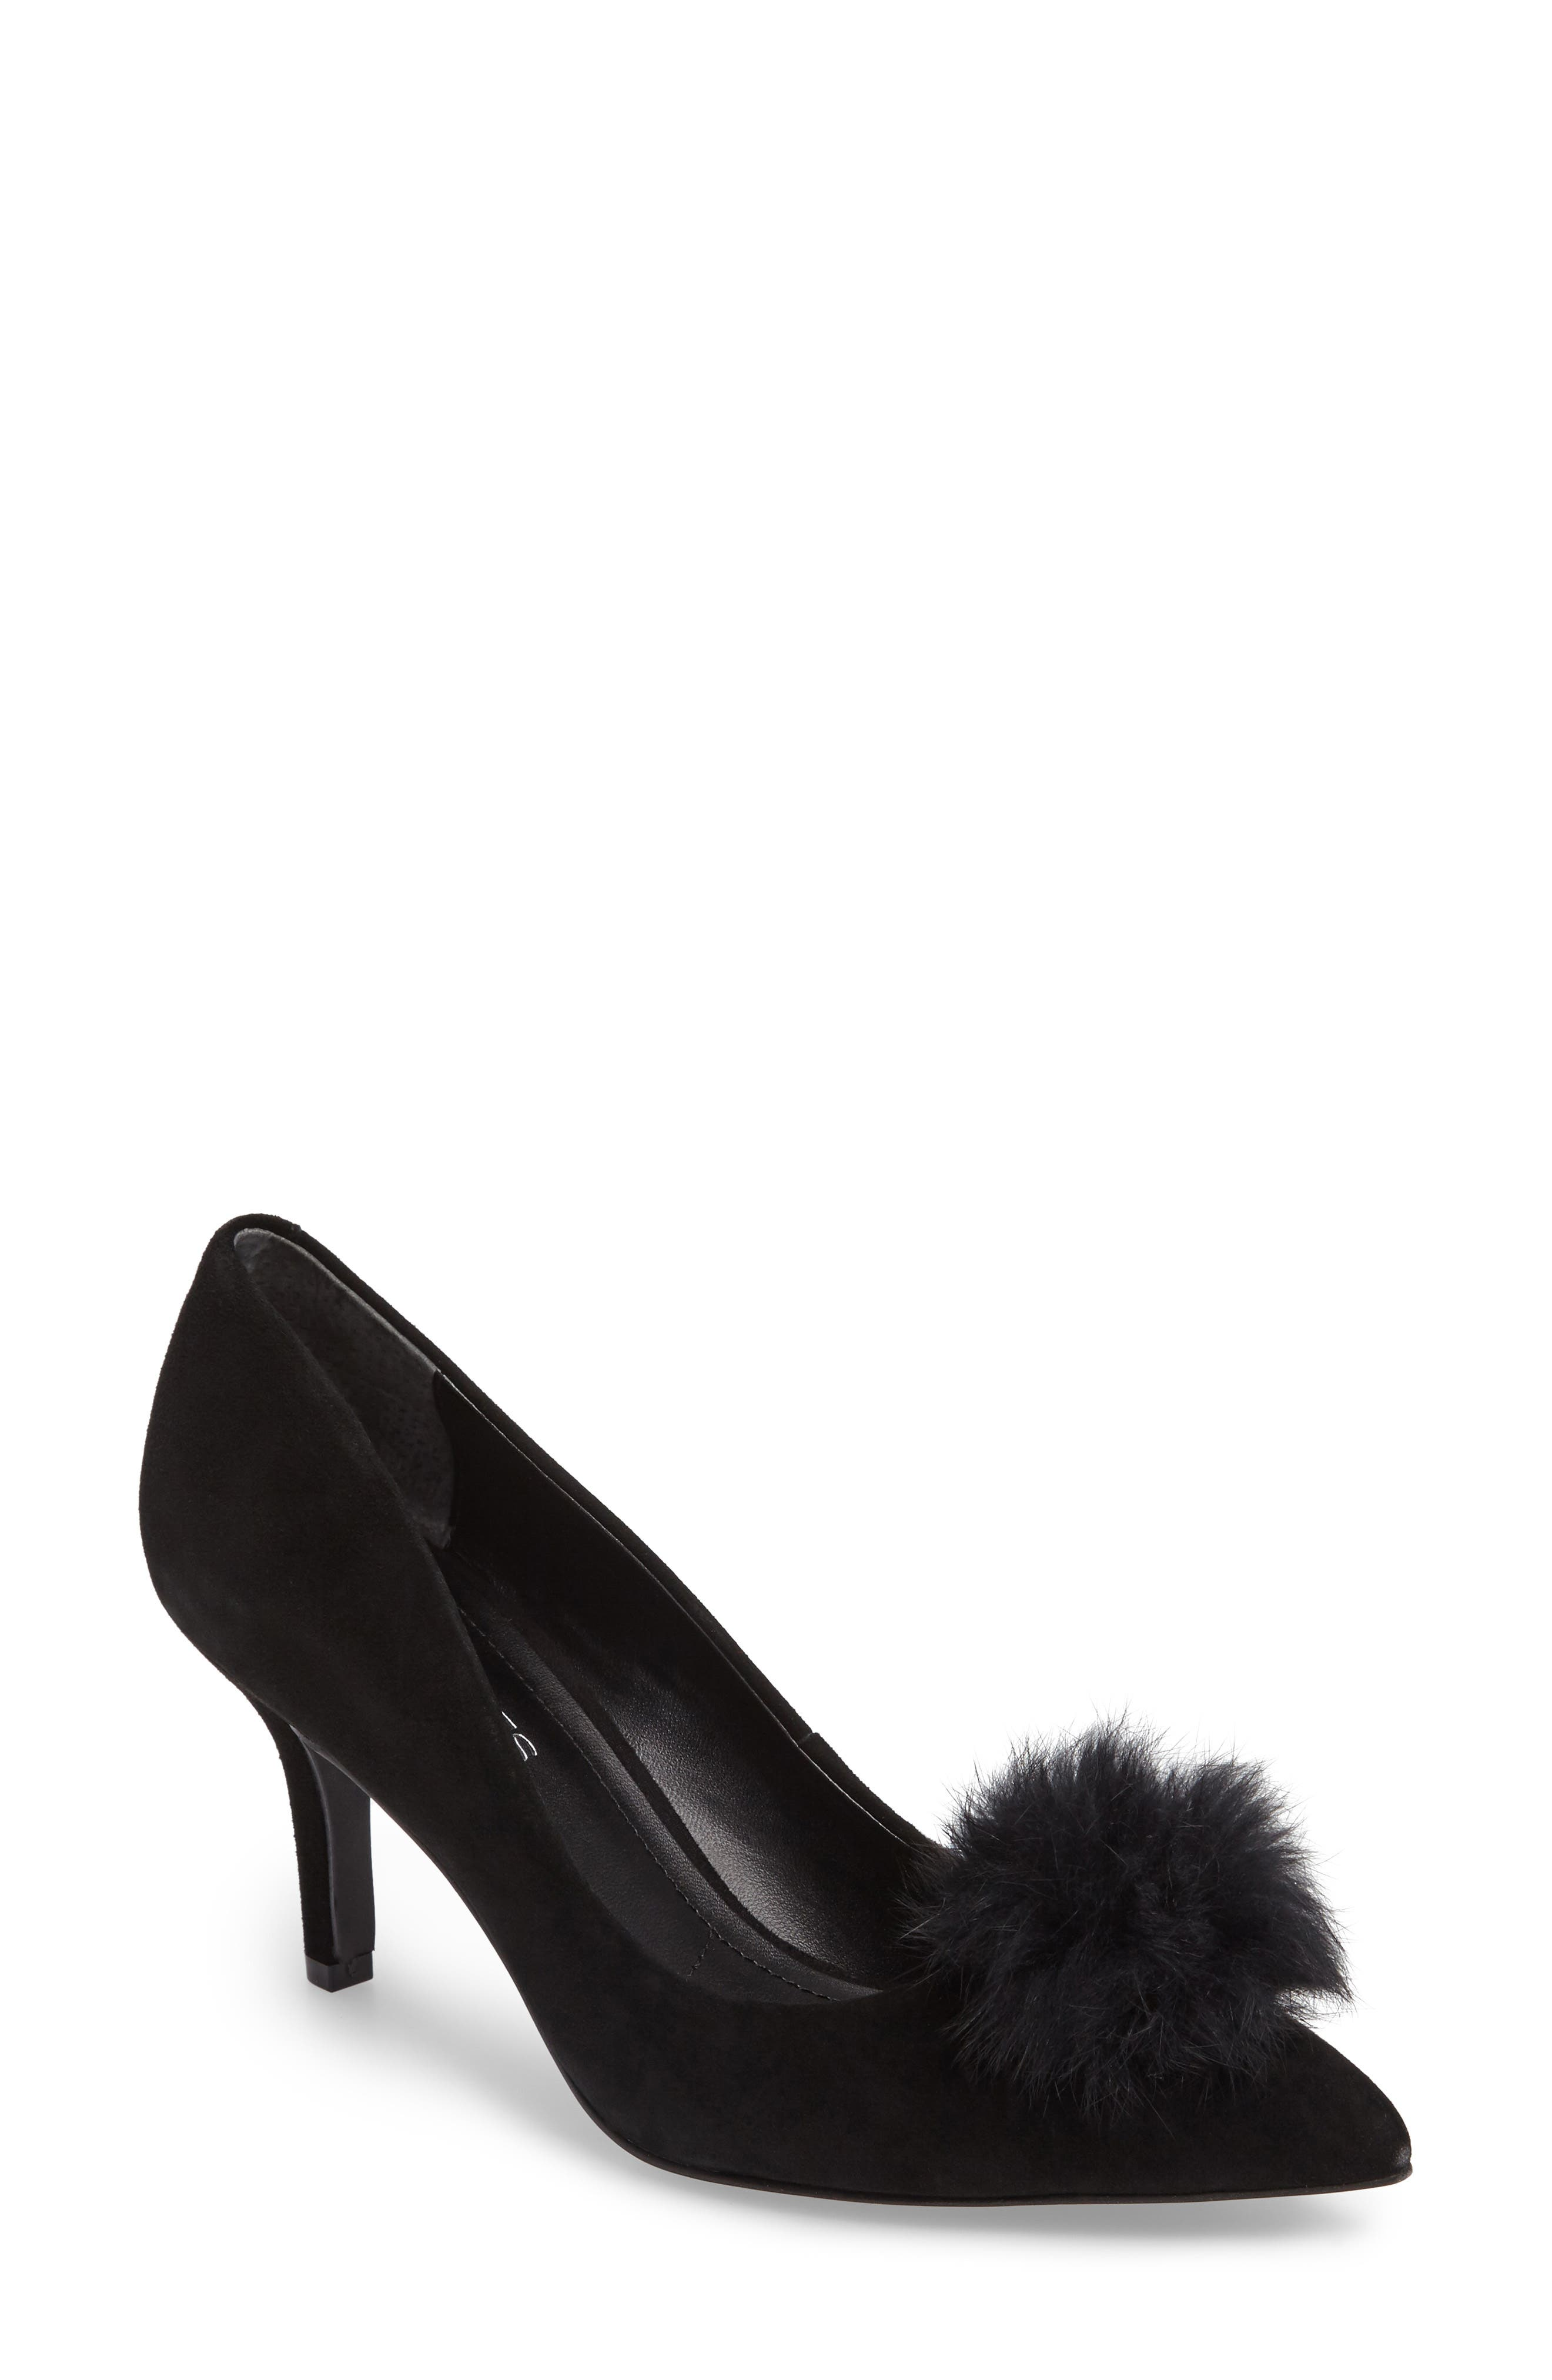 Sadie Genuine Rabbit Fur Pom Pump,                             Main thumbnail 1, color,                             001